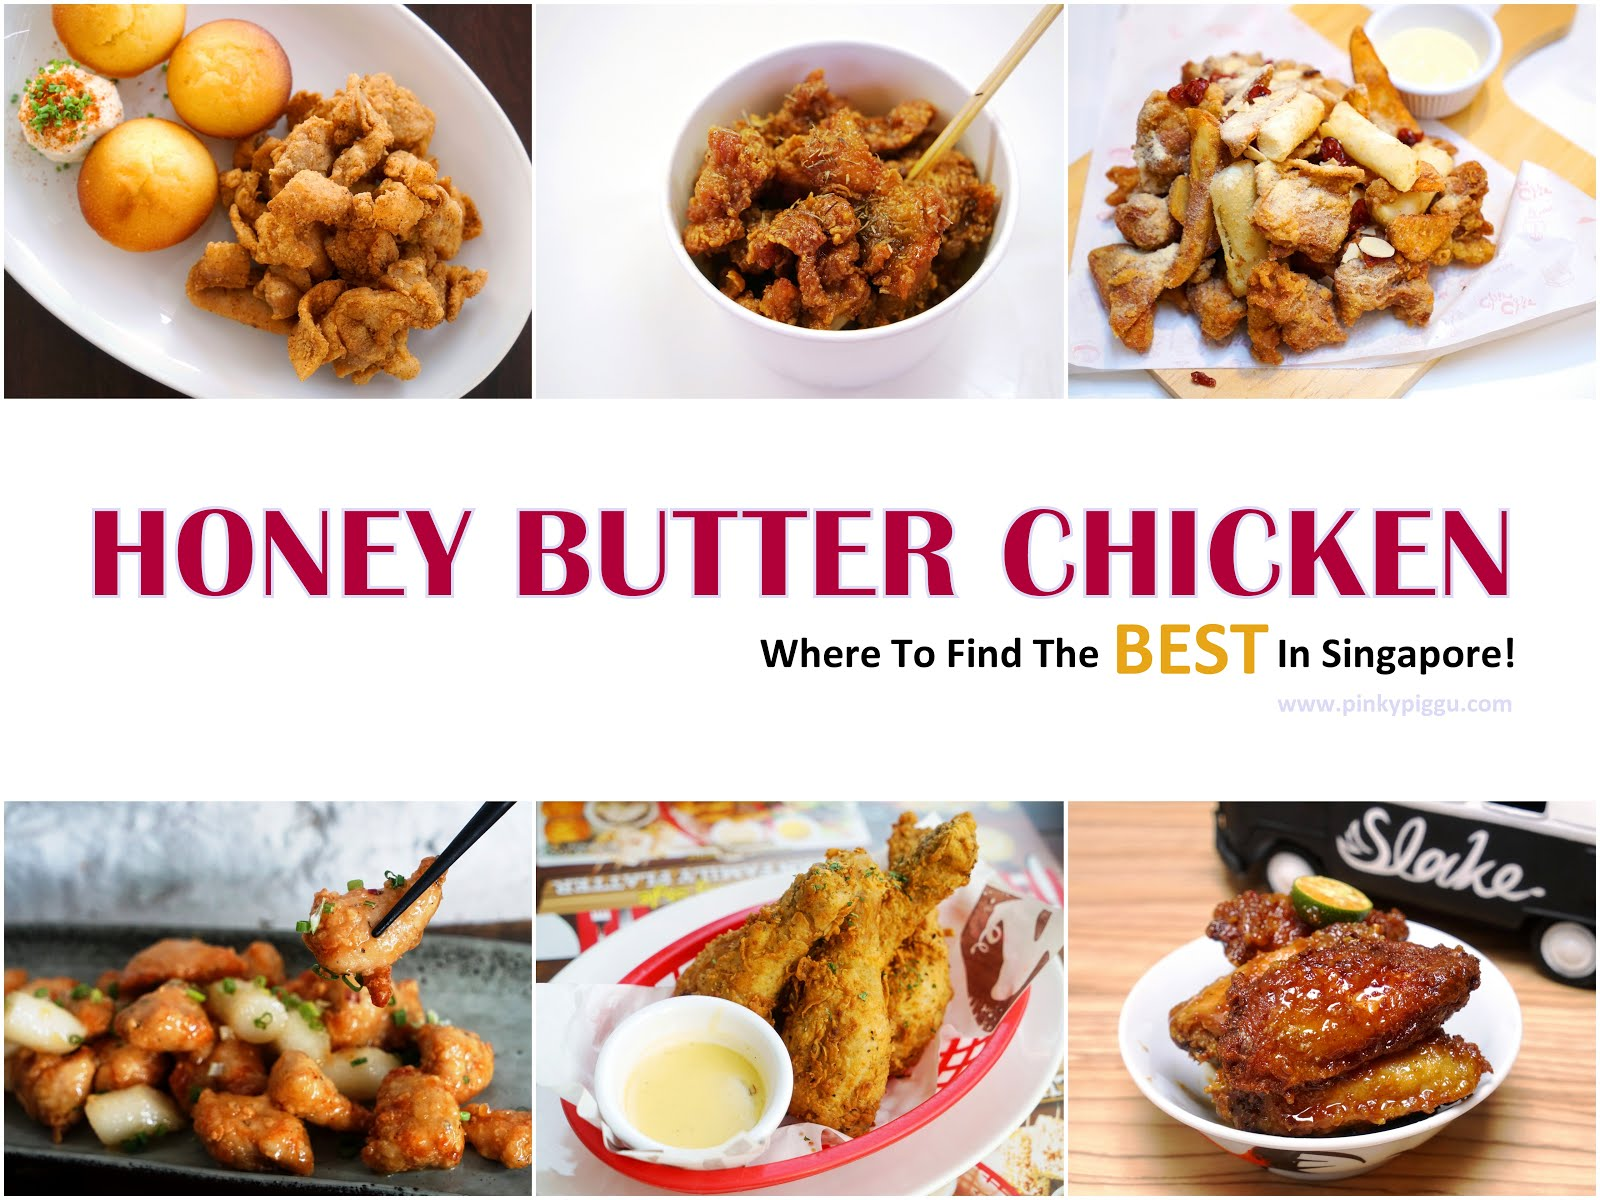 HONEY BUTTER CHICKEN! Where To Find The BEST In Singapore!